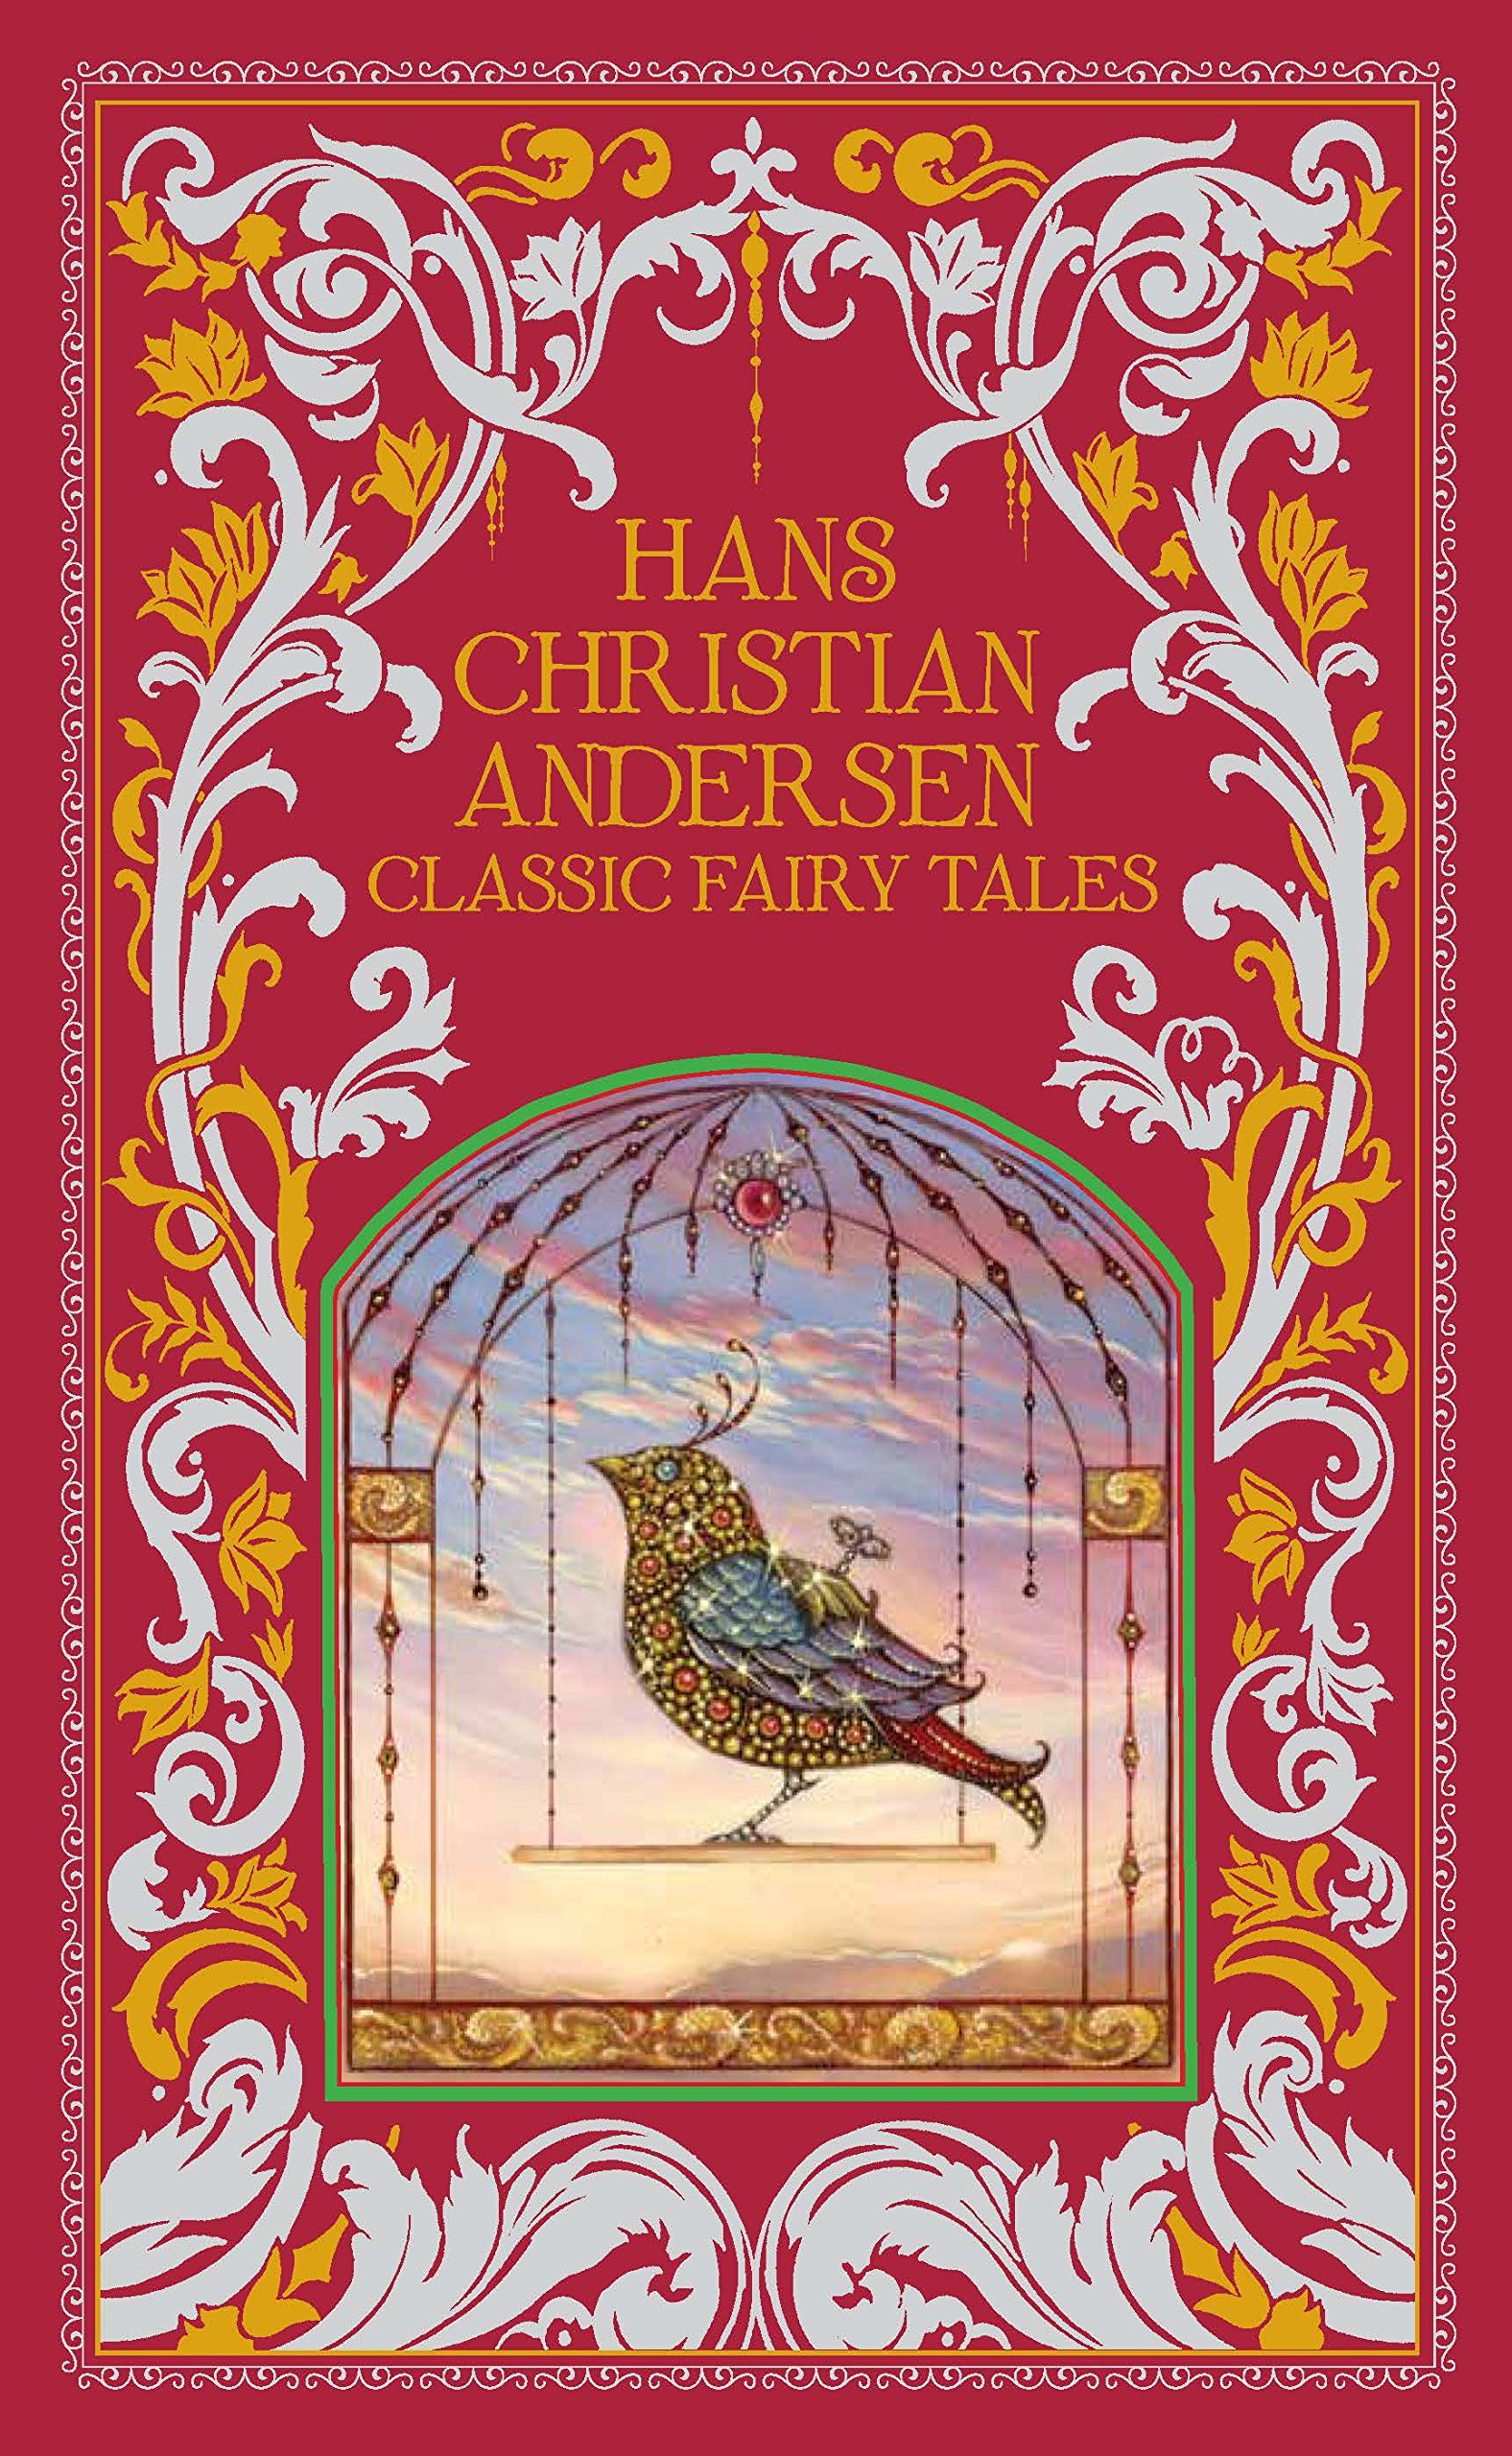 At least one of Hans Christian Andersen's books is a must read when you planning to live in Denmark.